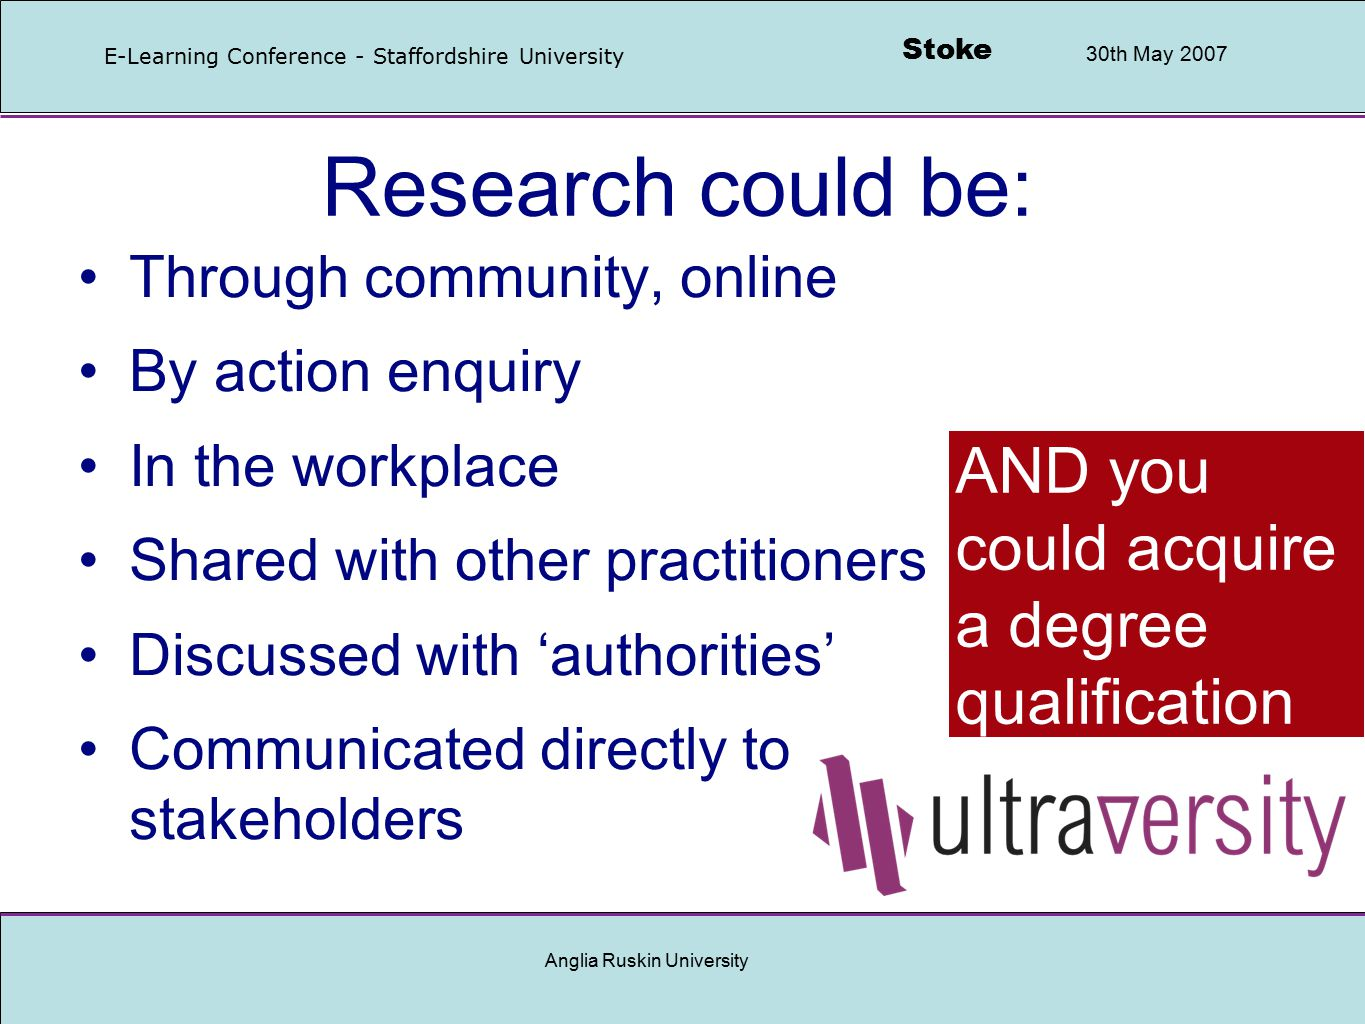 Stoke 30th May 2007 E-Learning Conference - Staffordshire University Anglia Ruskin University Research challenge Traditionally, research is carried out by research professionals… …struggling with scientific objectivity, validity, reliability… …results are published, later… …and may be applied by practitioners and policymakers BUT often too late, particularly with e-learning where technology develops so fast